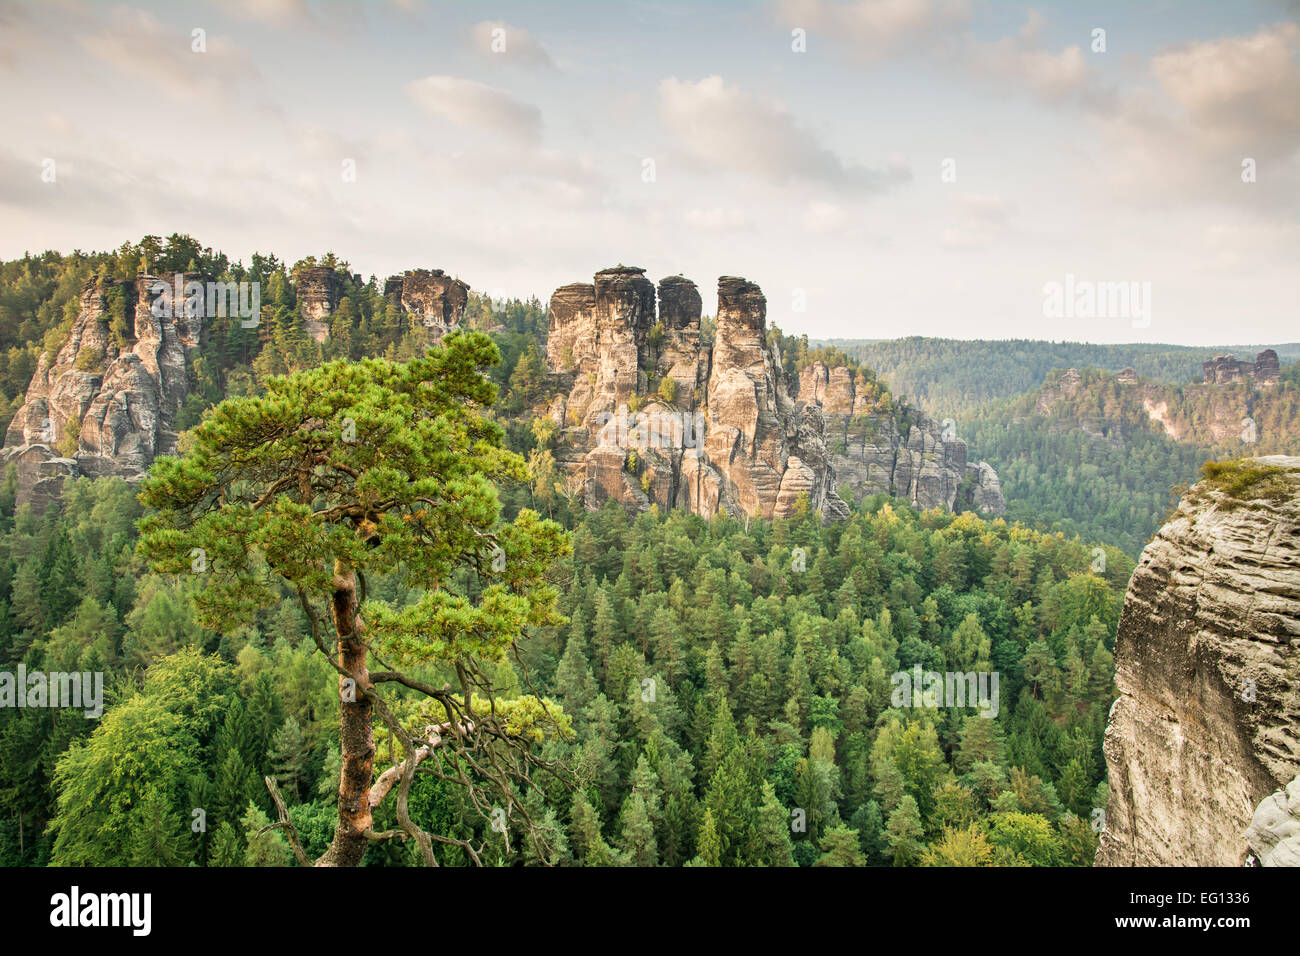 The sandstone mountains of the Bastei in Saxony (Germany) - Stock Image